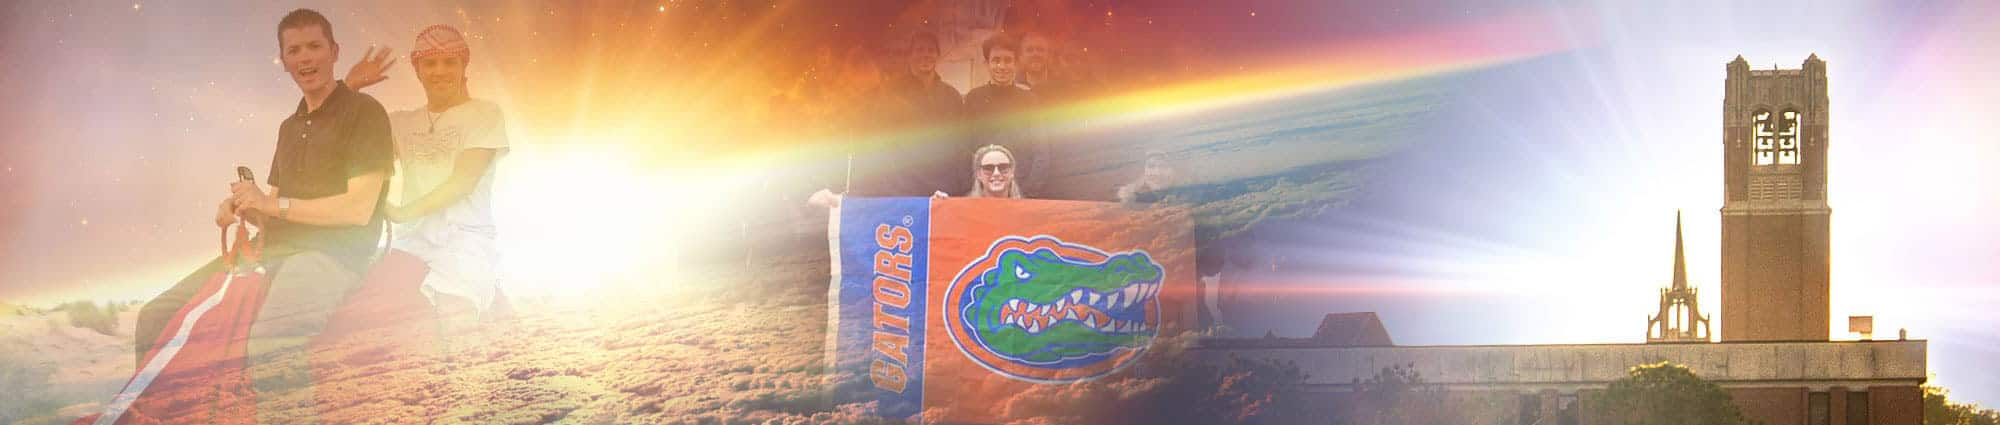 Global Gator Immersion Experience